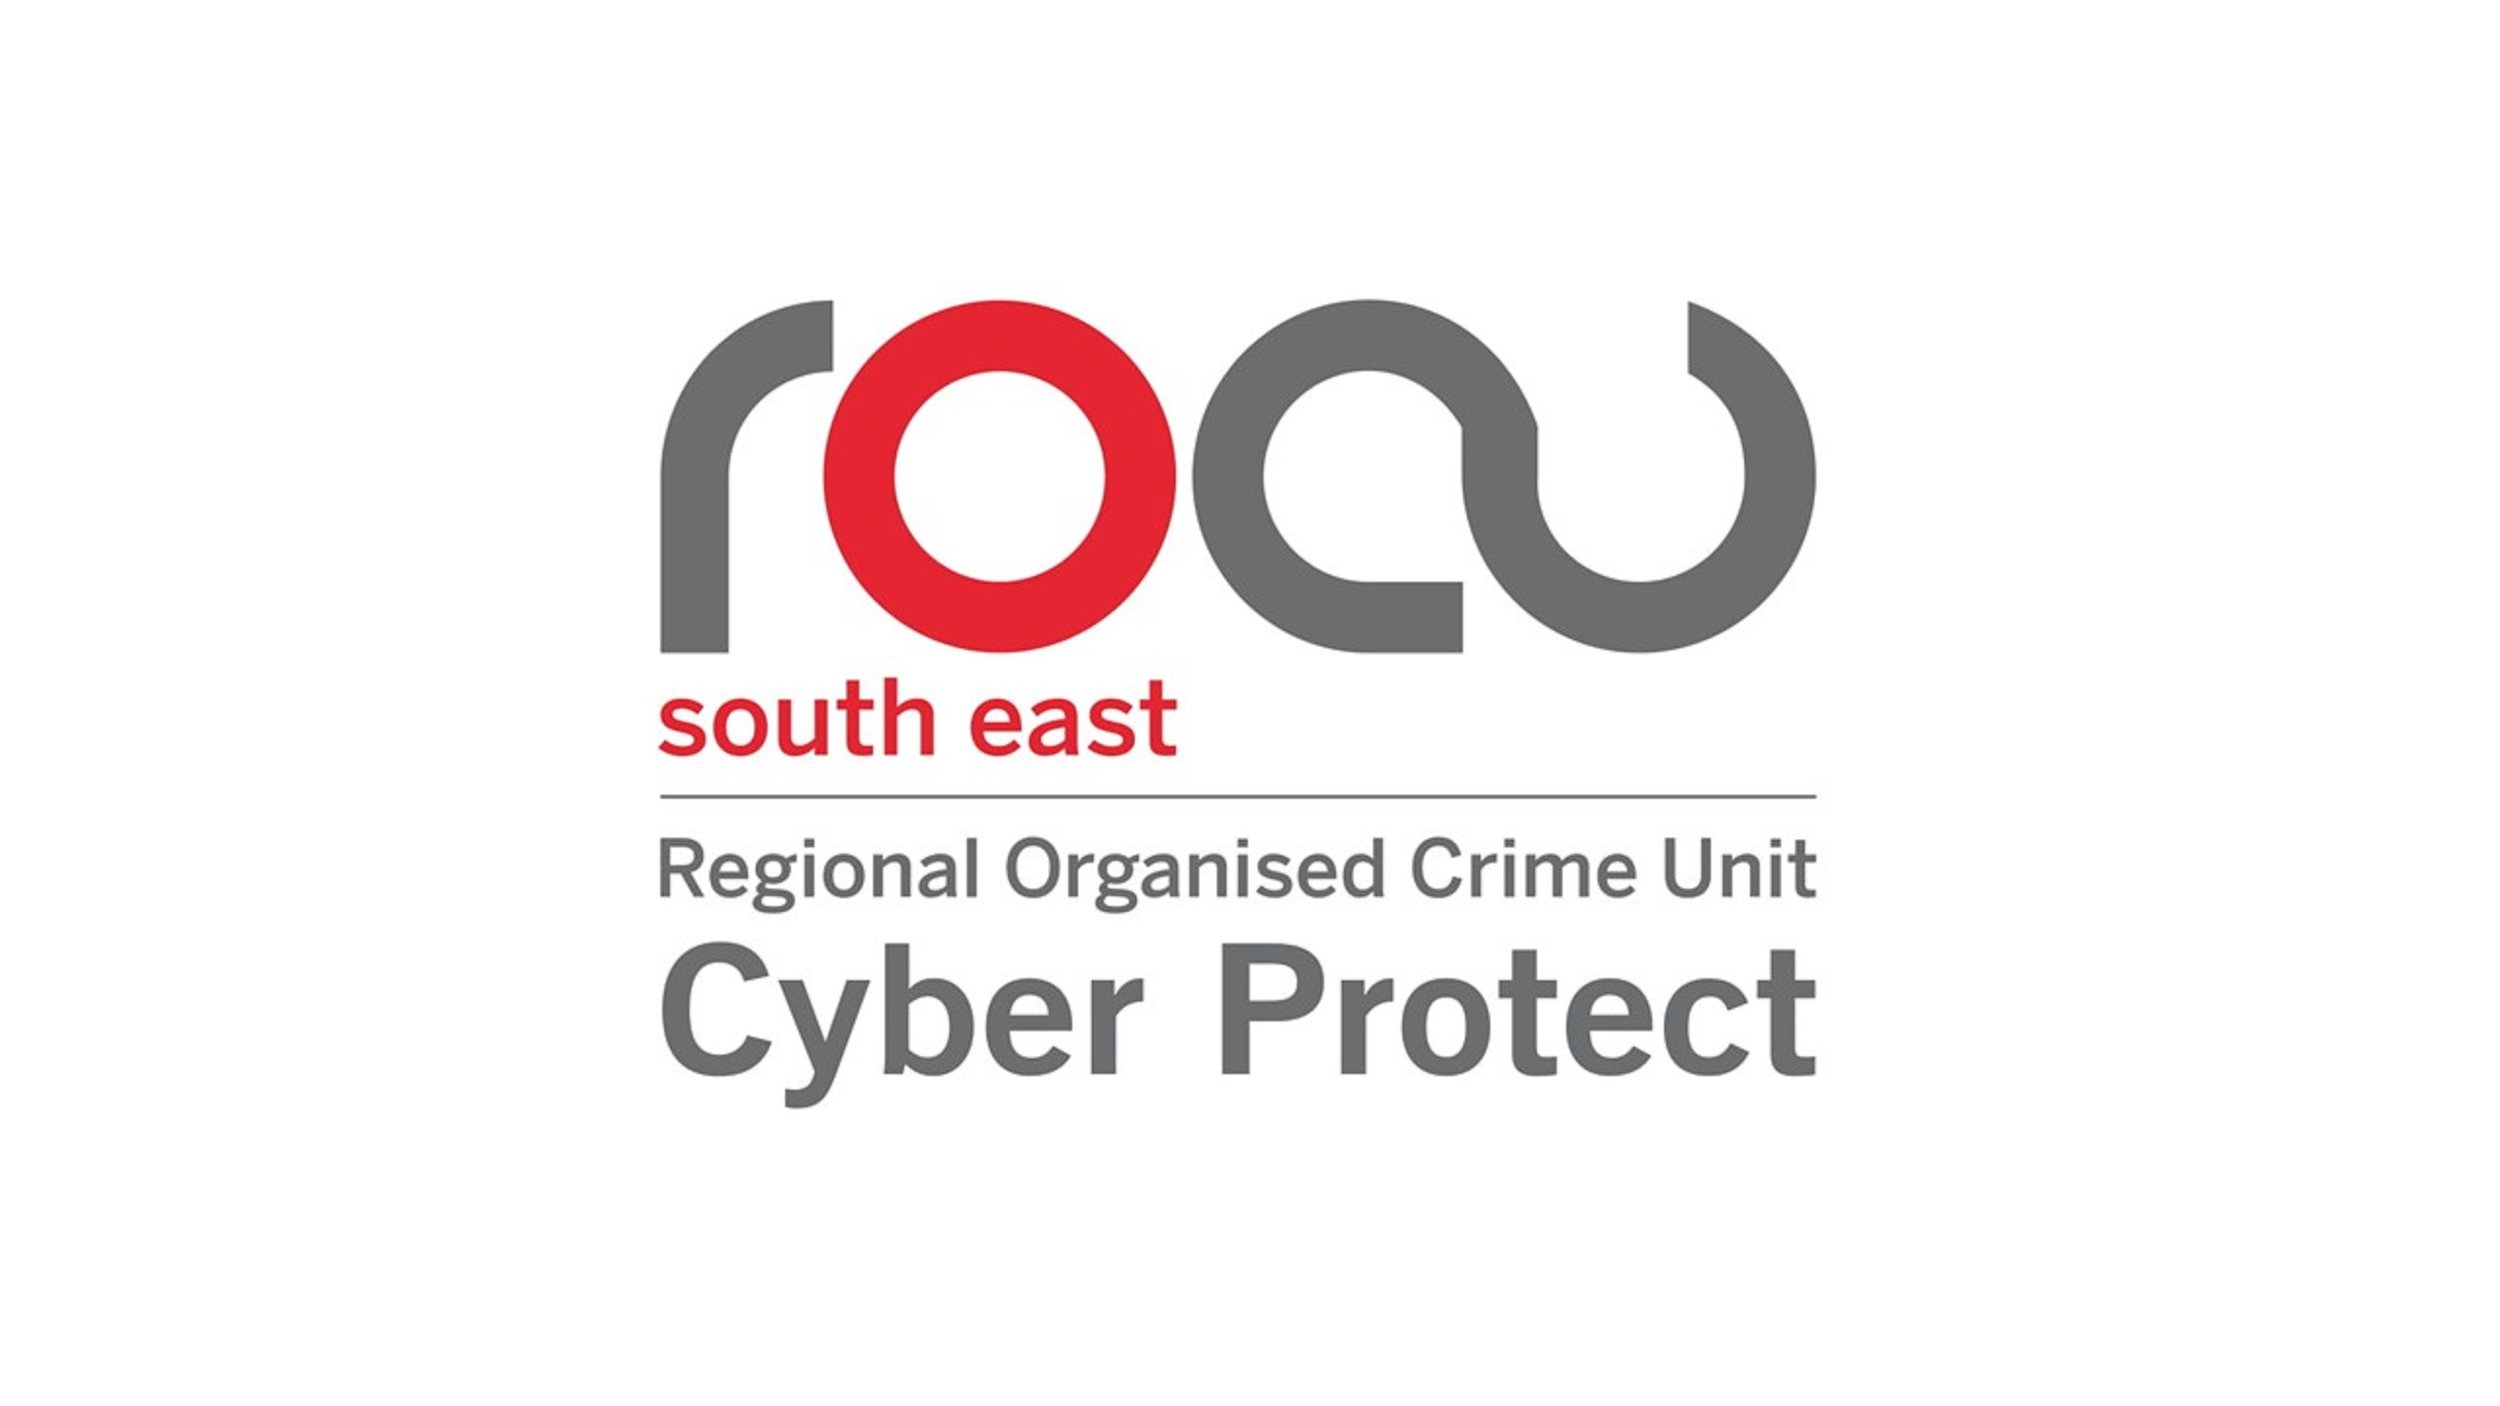 5th March 2019 - We are delighted that Dan Maund of the South East Regional Organised Crime Unit (SEROCU) will be holding 3 free 1.5 hour seminars for exhibitors on cyber security and strategy development for companies.8 spaces are available on each seminar and the 3 seminars will be held across the day so up to 24 exhibiting companies can benefit from this offer. Booking a space is dependent on having booked your stand - only 1 space will be made available to any exhibiting company on a first come first served basis.